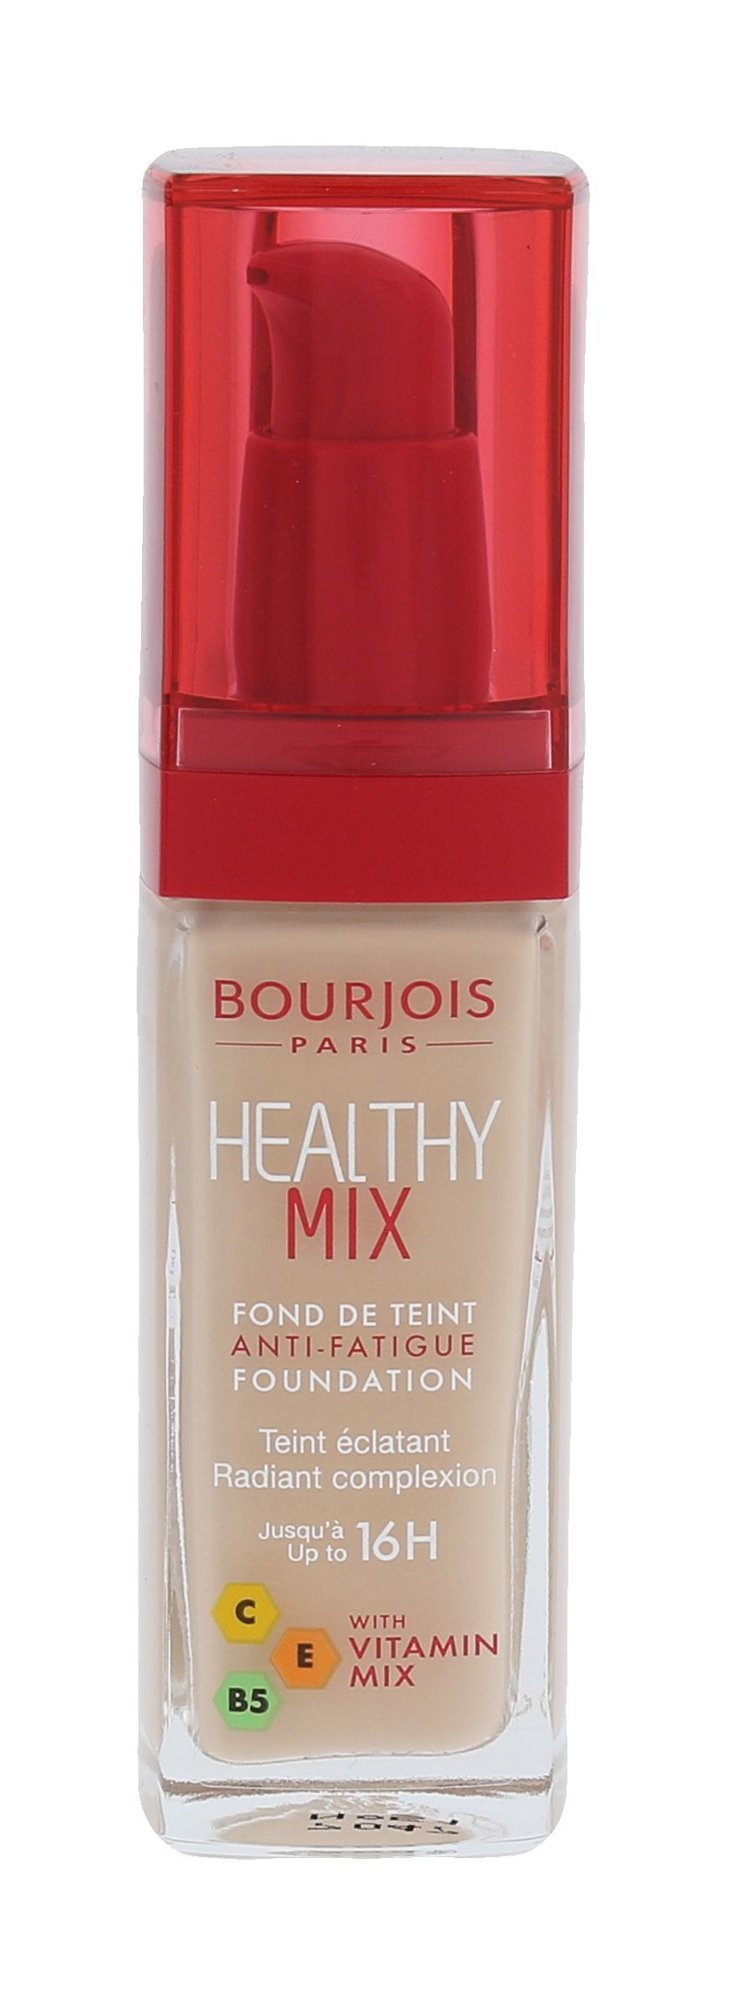 BOURJOIS Paris Healthy Mix Cosmetic 30ml 51 Light Vanilla